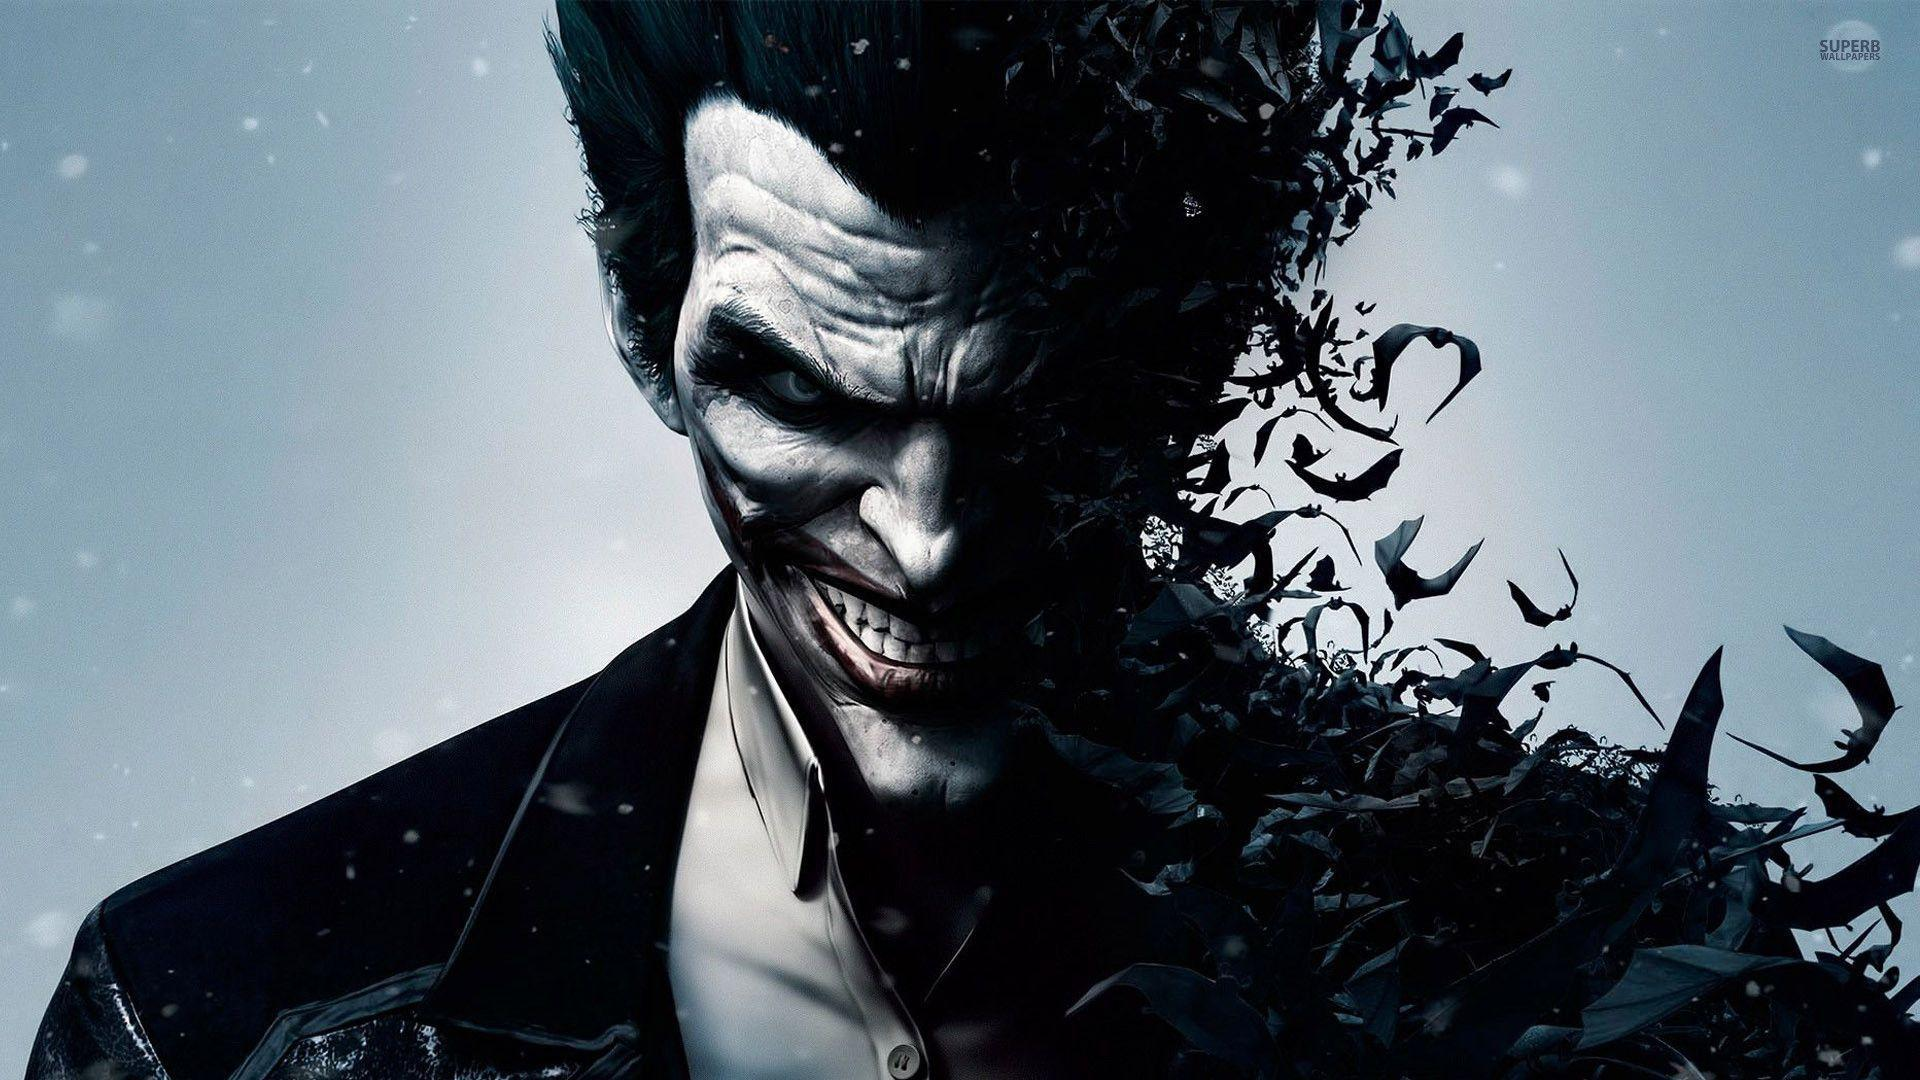 Joker - Batman - Arkham Origins wallpaper - Game wallpapers - #